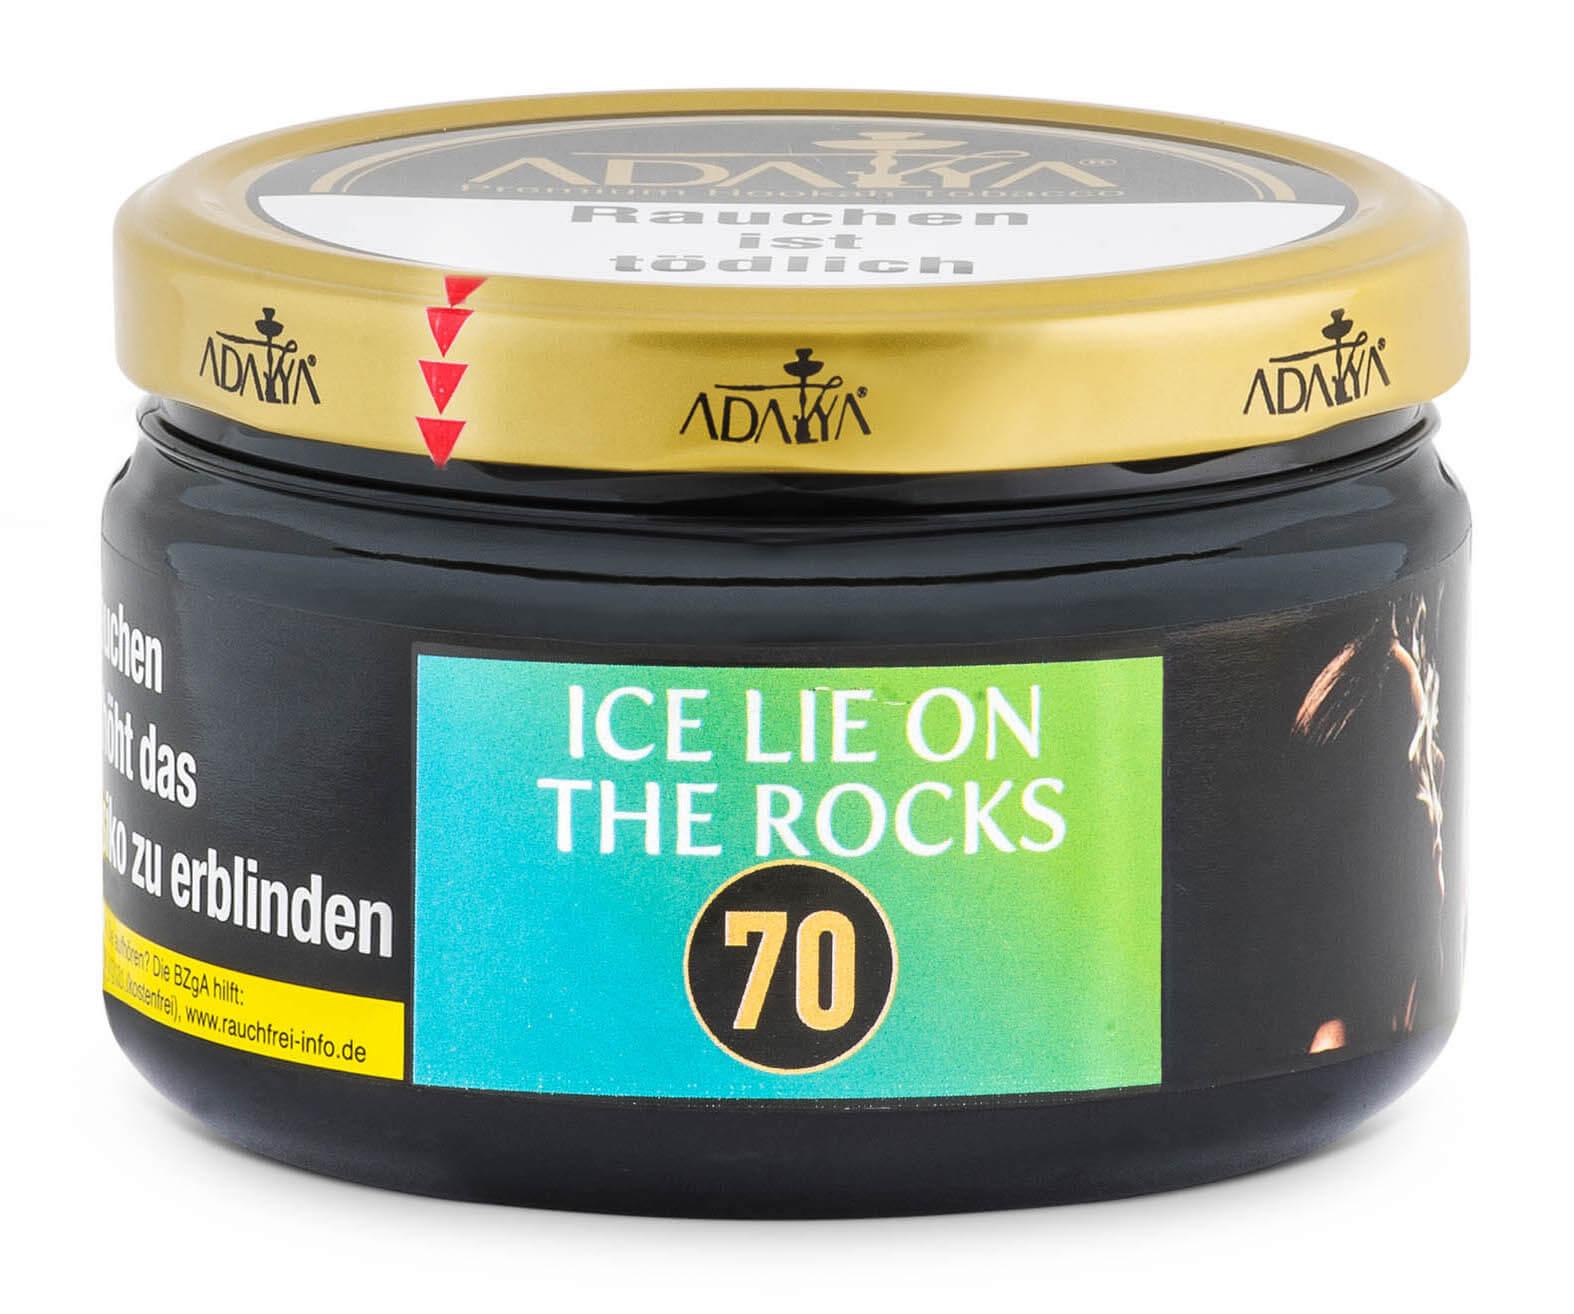 Adalya Tabak Ice Lie on the Rocks 200g Dose